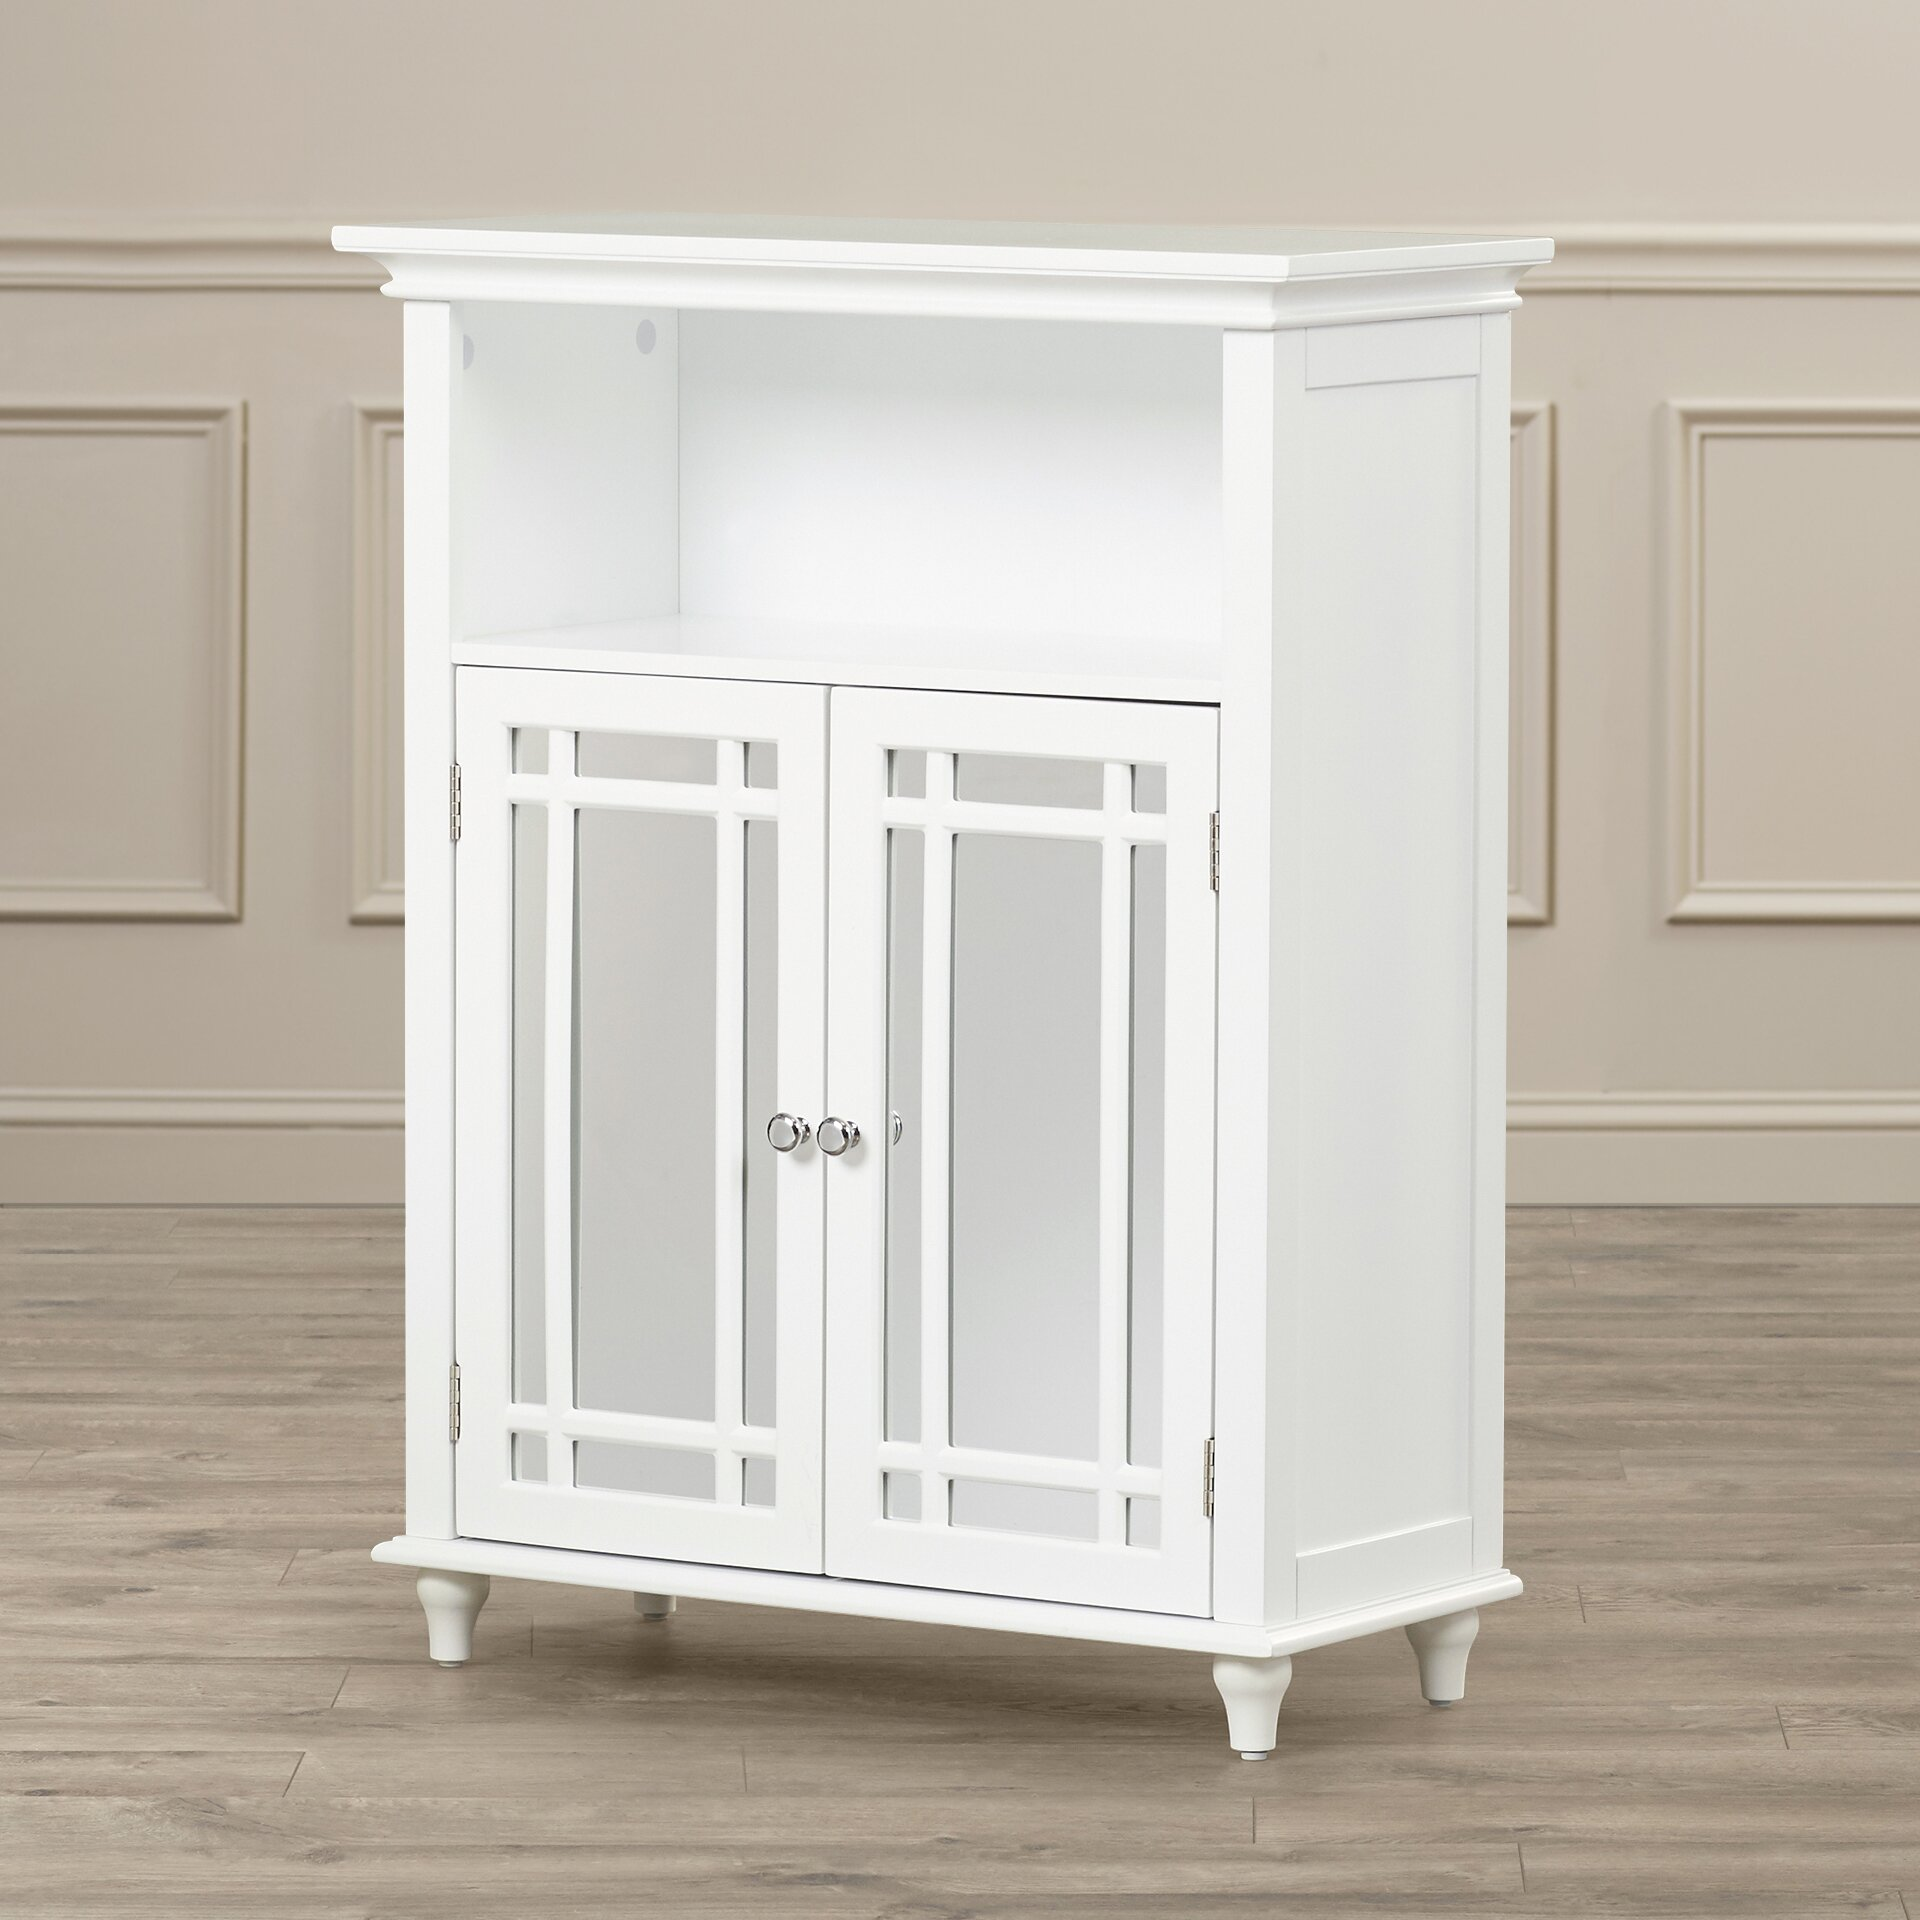 """Wayfair Free Standing Kitchen Cabinets: Alcott Hill Tully 26.5"""" X 34"""" Free Standing Cabinet"""